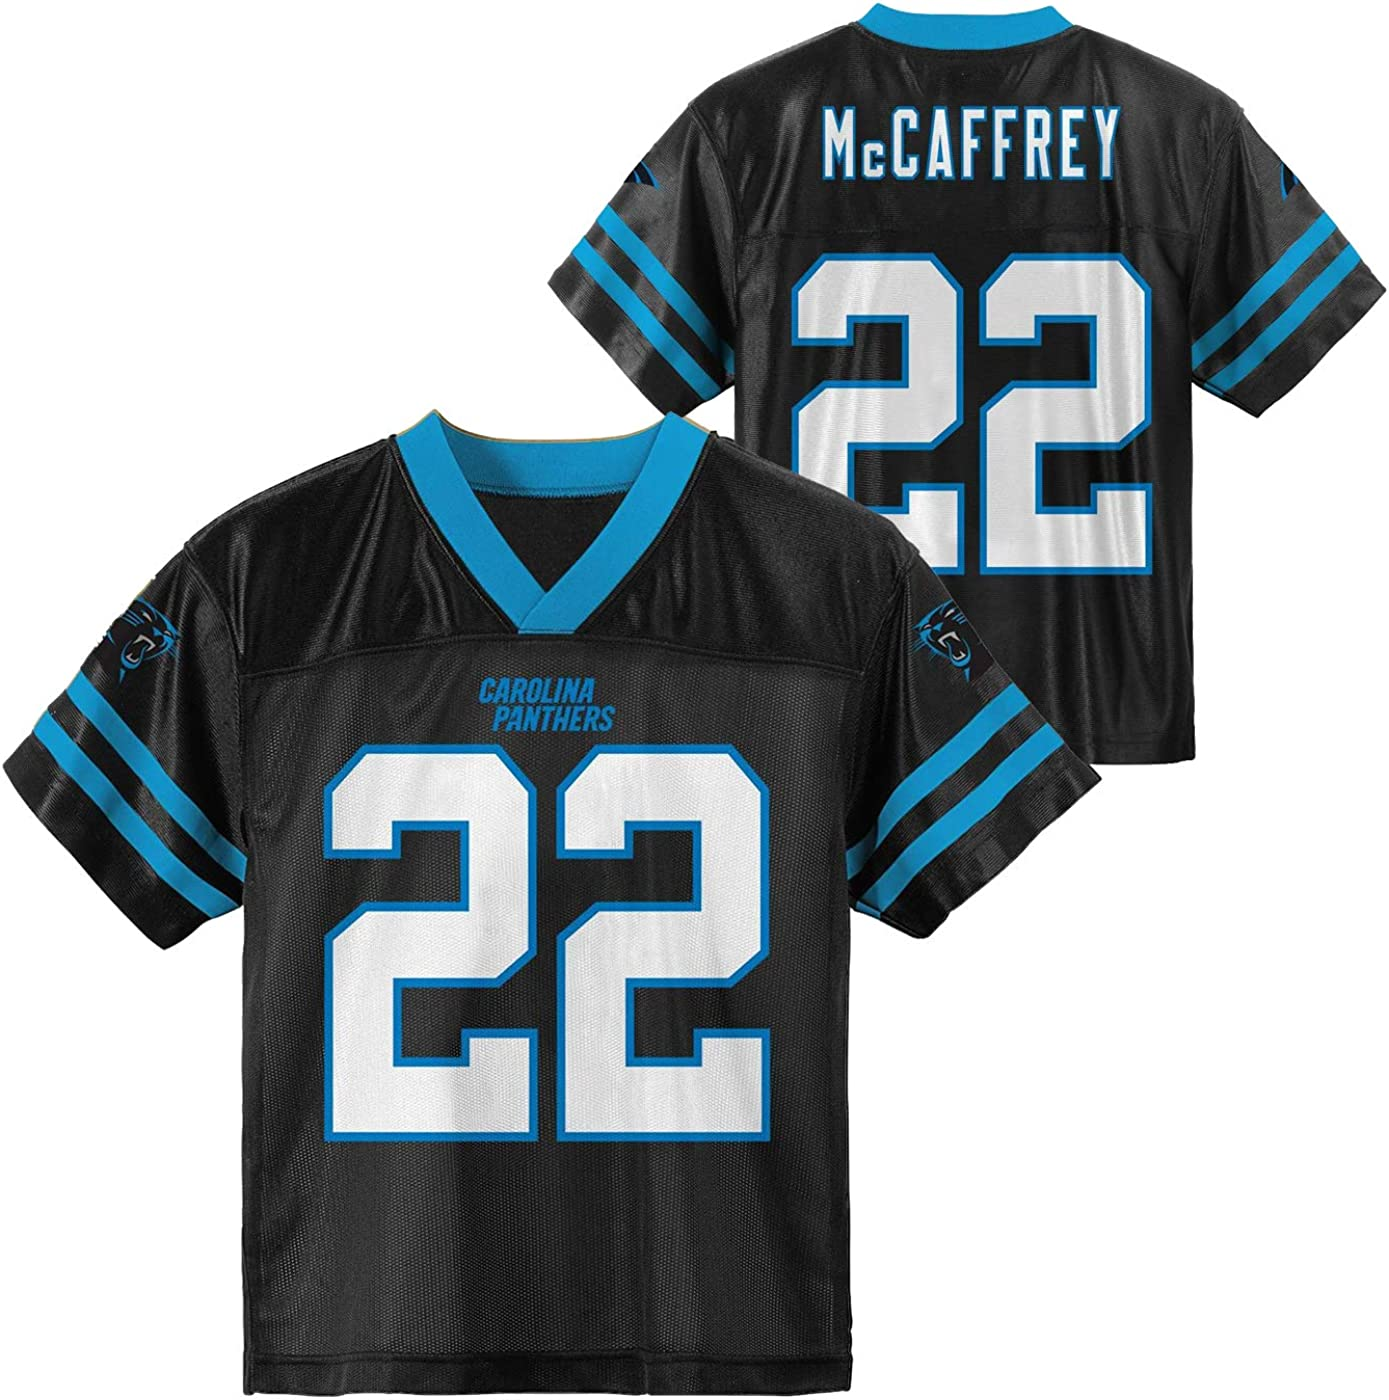 Outerstuff NFL Infants Toddler Team Color Name and Number Home Player Jersey